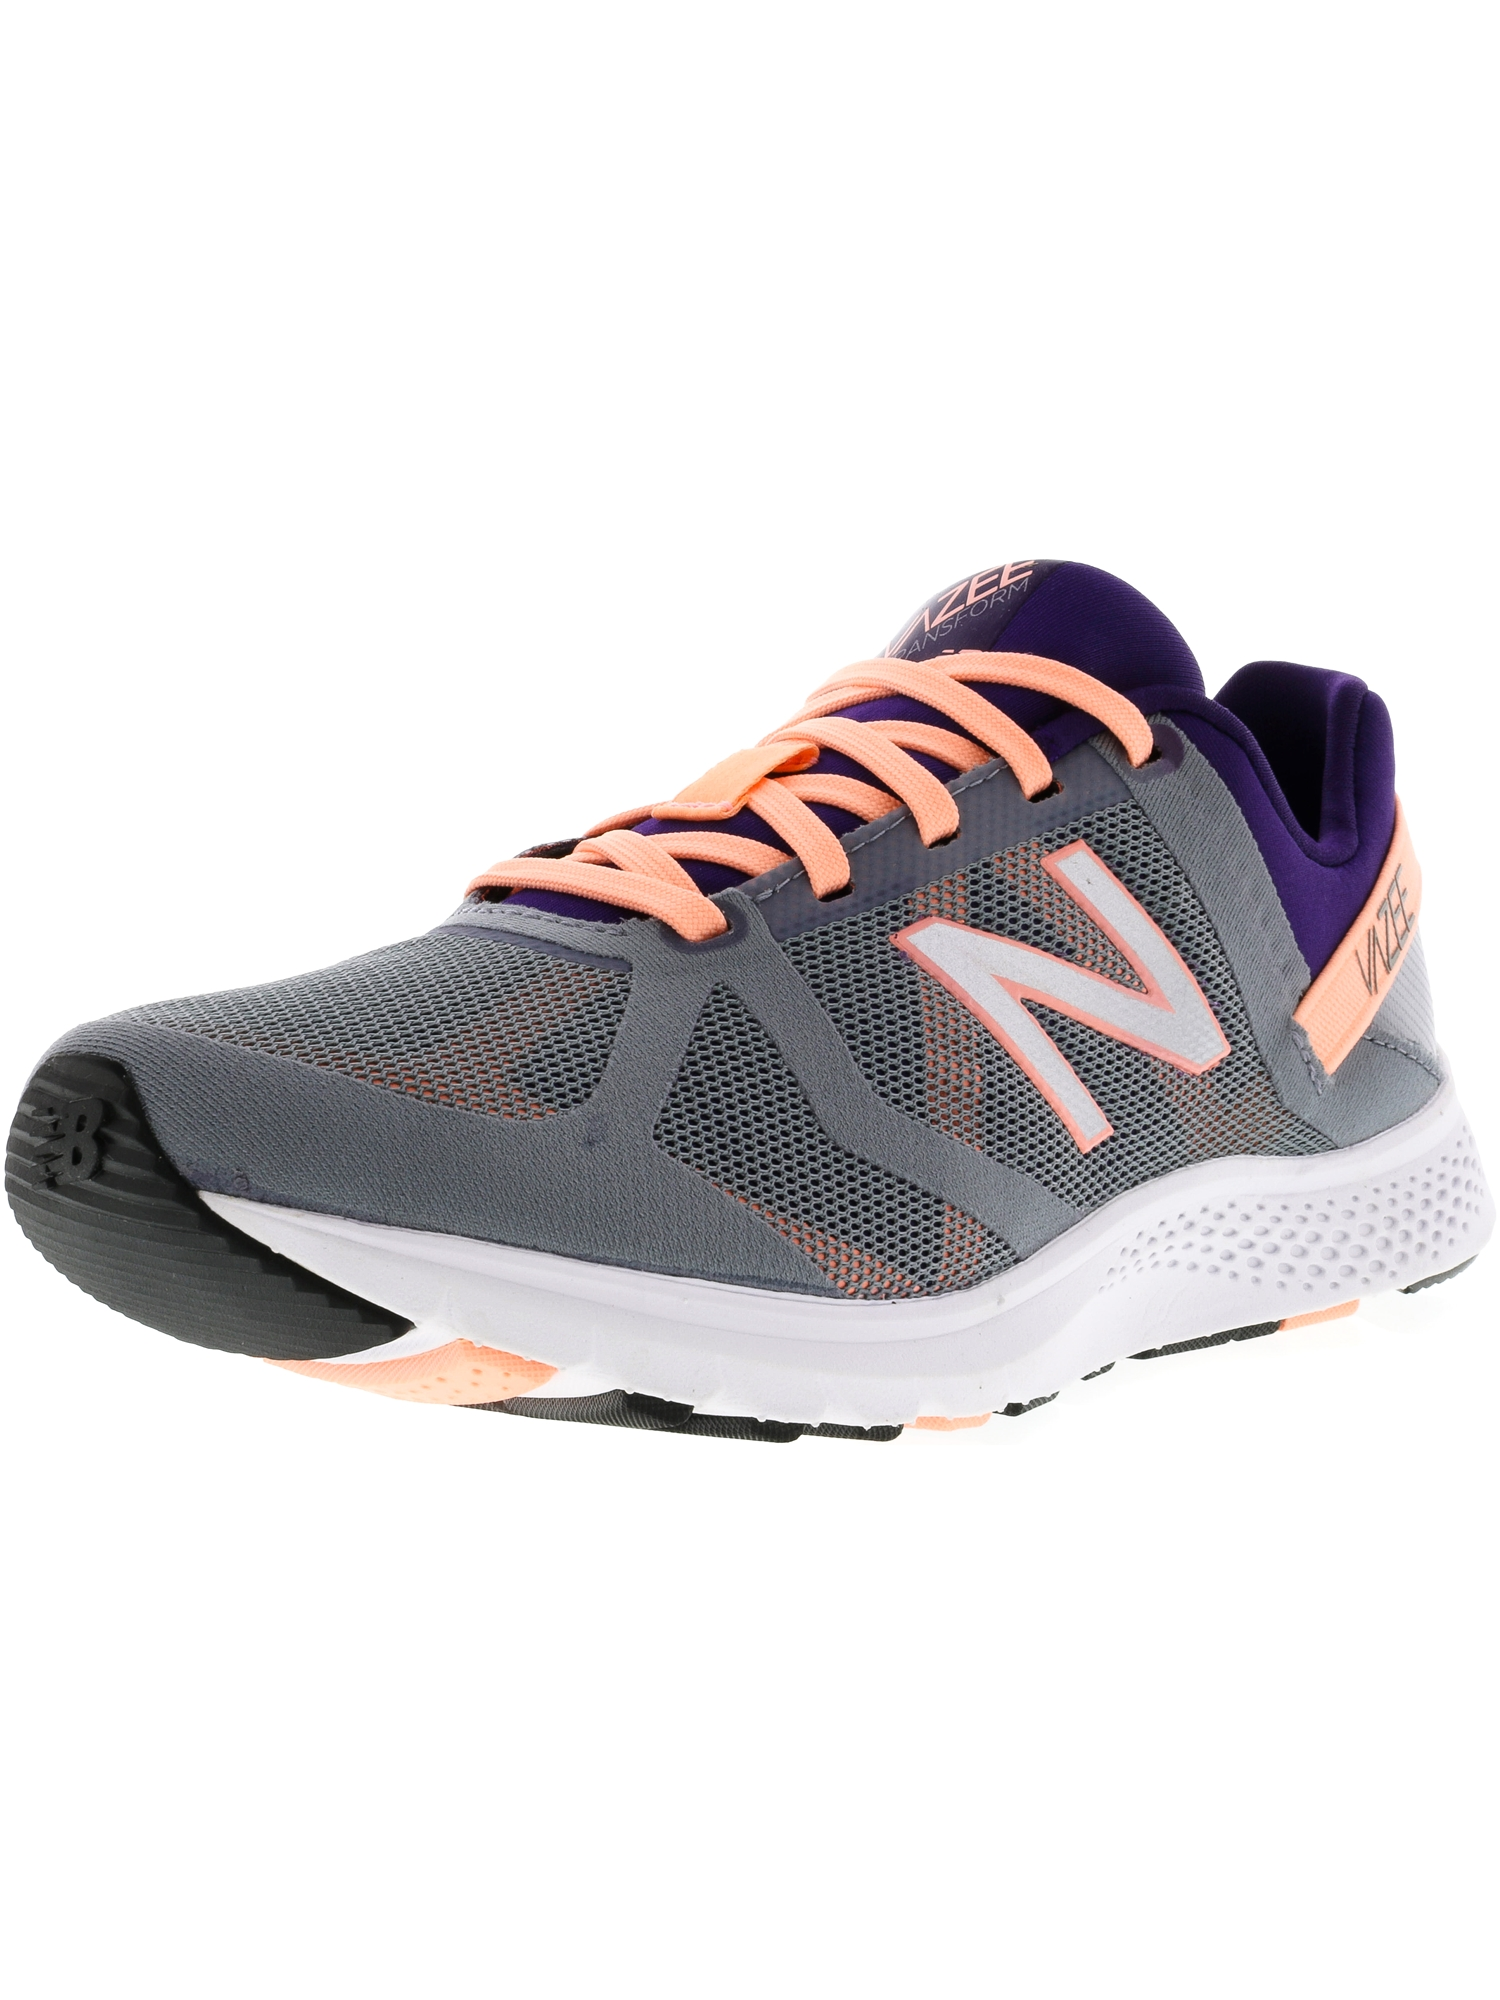 New Balance Women's Wx77 Wg Ankle-High Mesh Cross Trainer Shoe 11M by New Balance